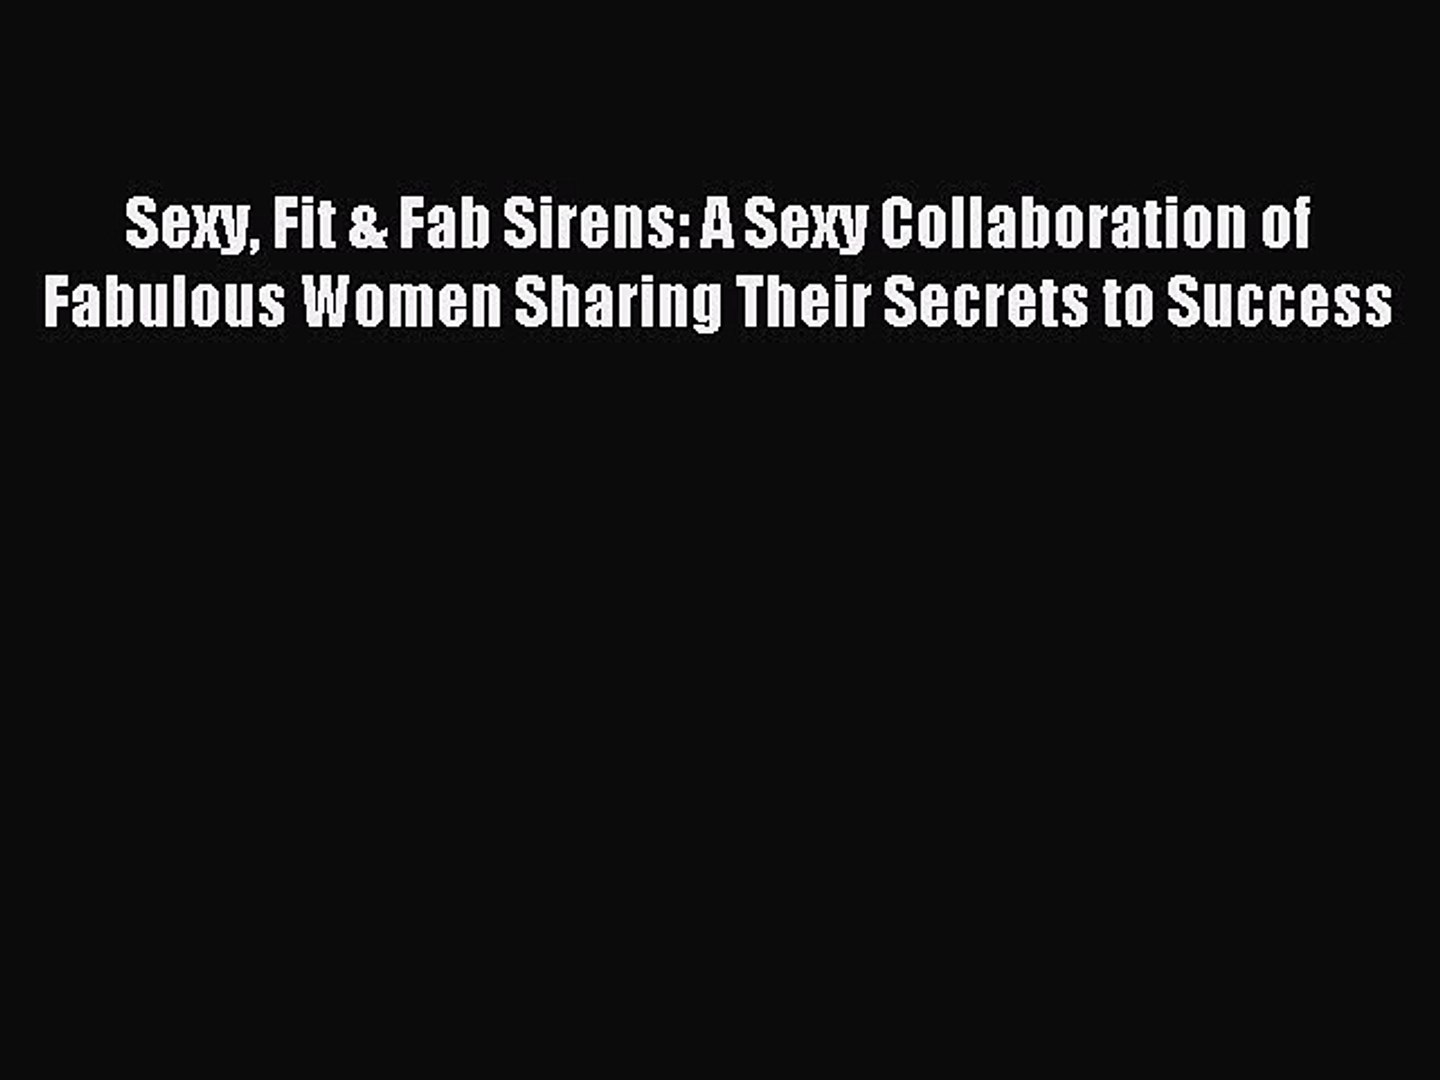 Read Sexy Fit & Fab Sirens: A Sexy Collaboration of Fabulous Women Sharing Their Secrets to